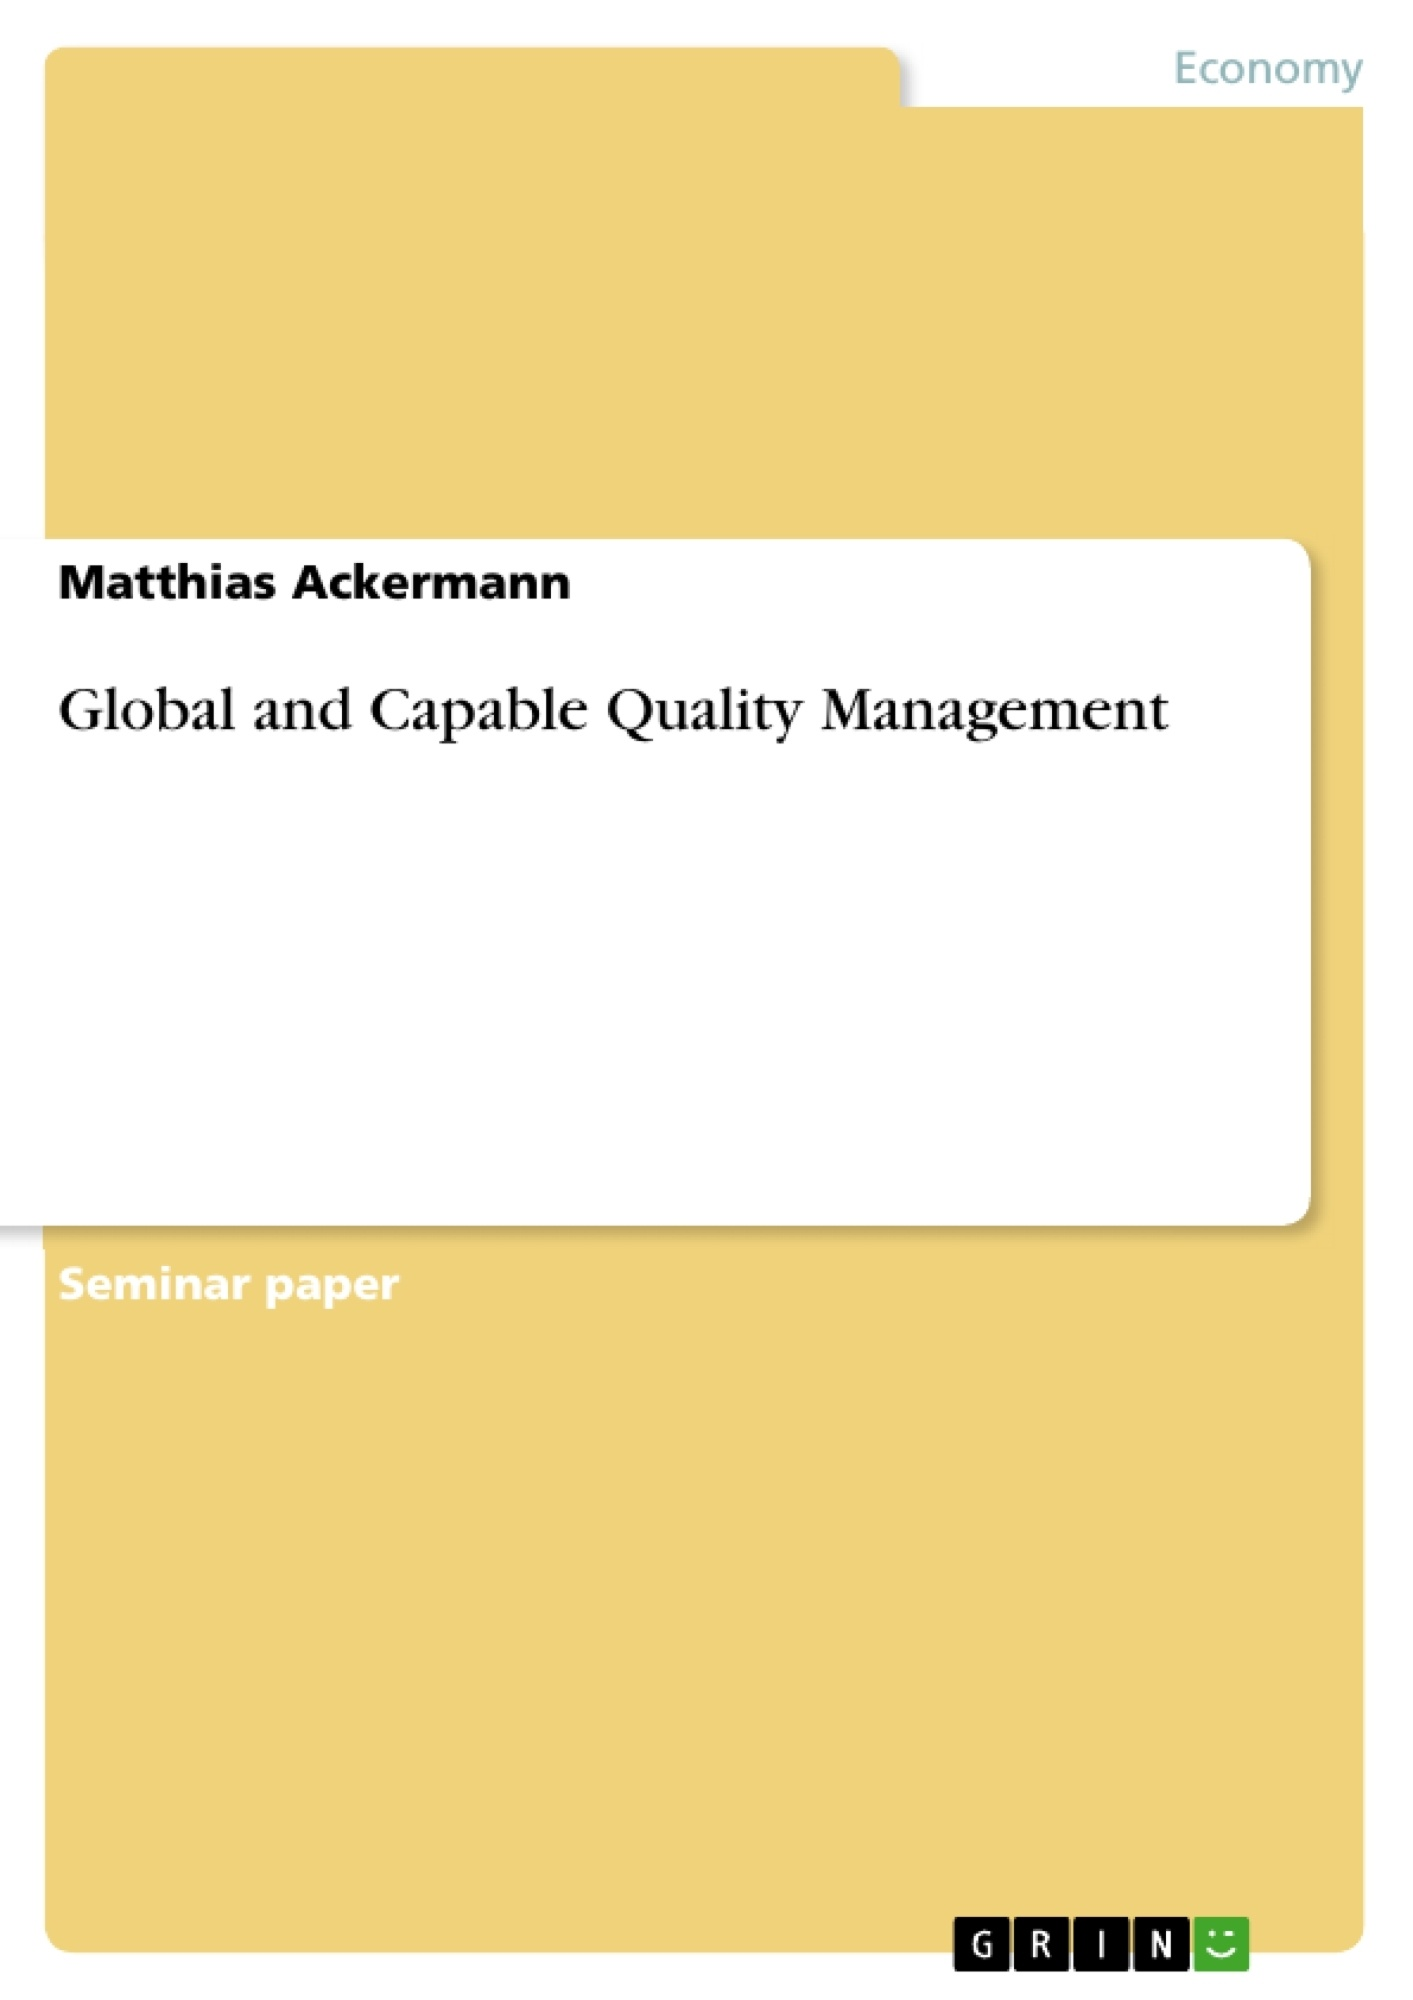 Title: Global and Capable Quality Management